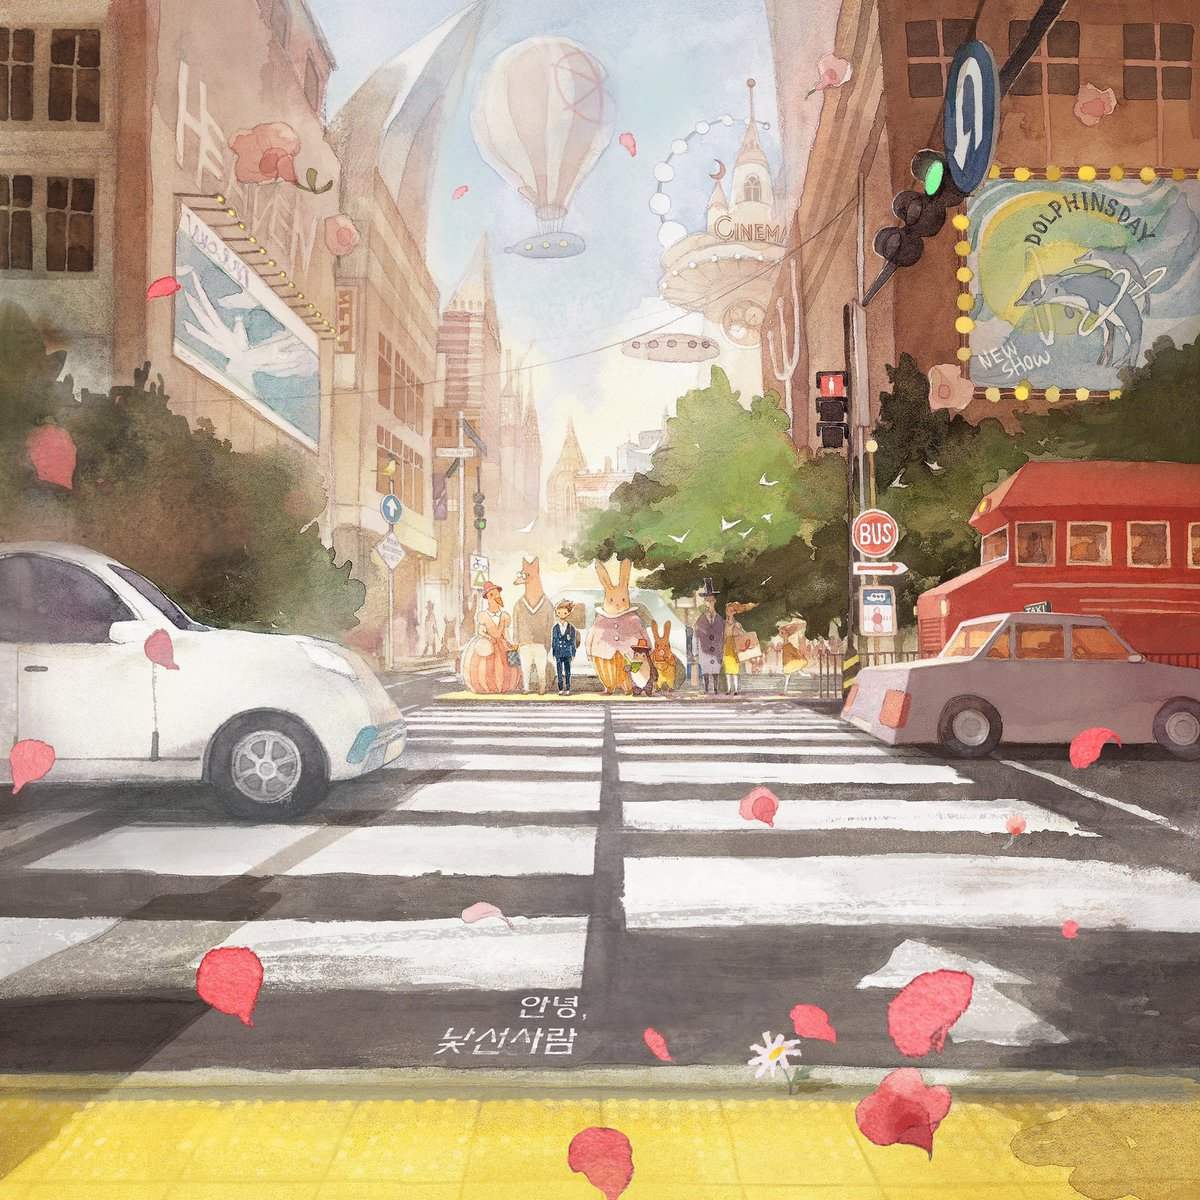 cix town scenes literally one of the best illustration that i have ever seen. it brings so much meaning and interpretation in one picture <br>http://pic.twitter.com/pKwhXGj7ye